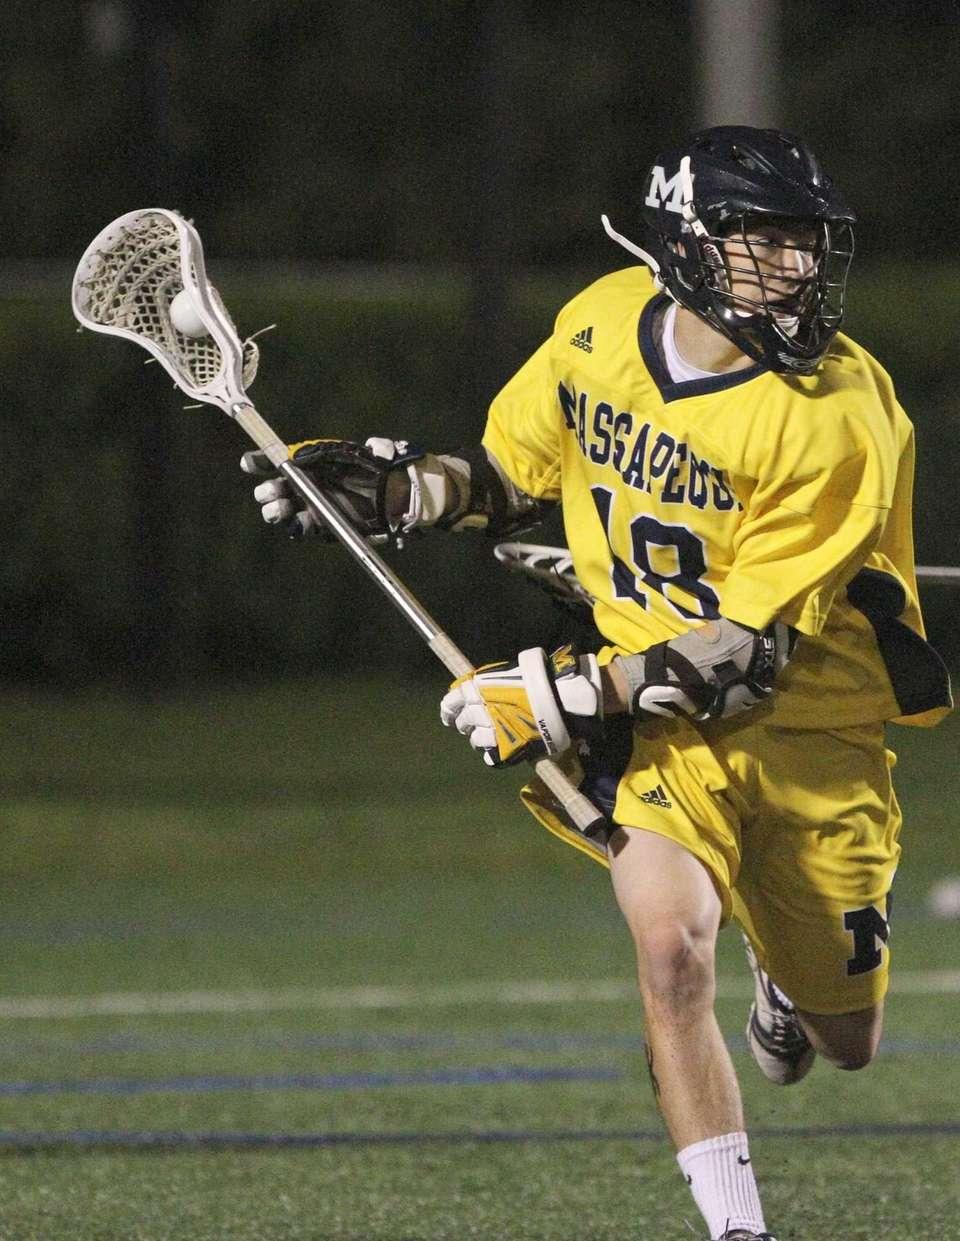 Carter Hawthorne of Massapequa brings the ball from